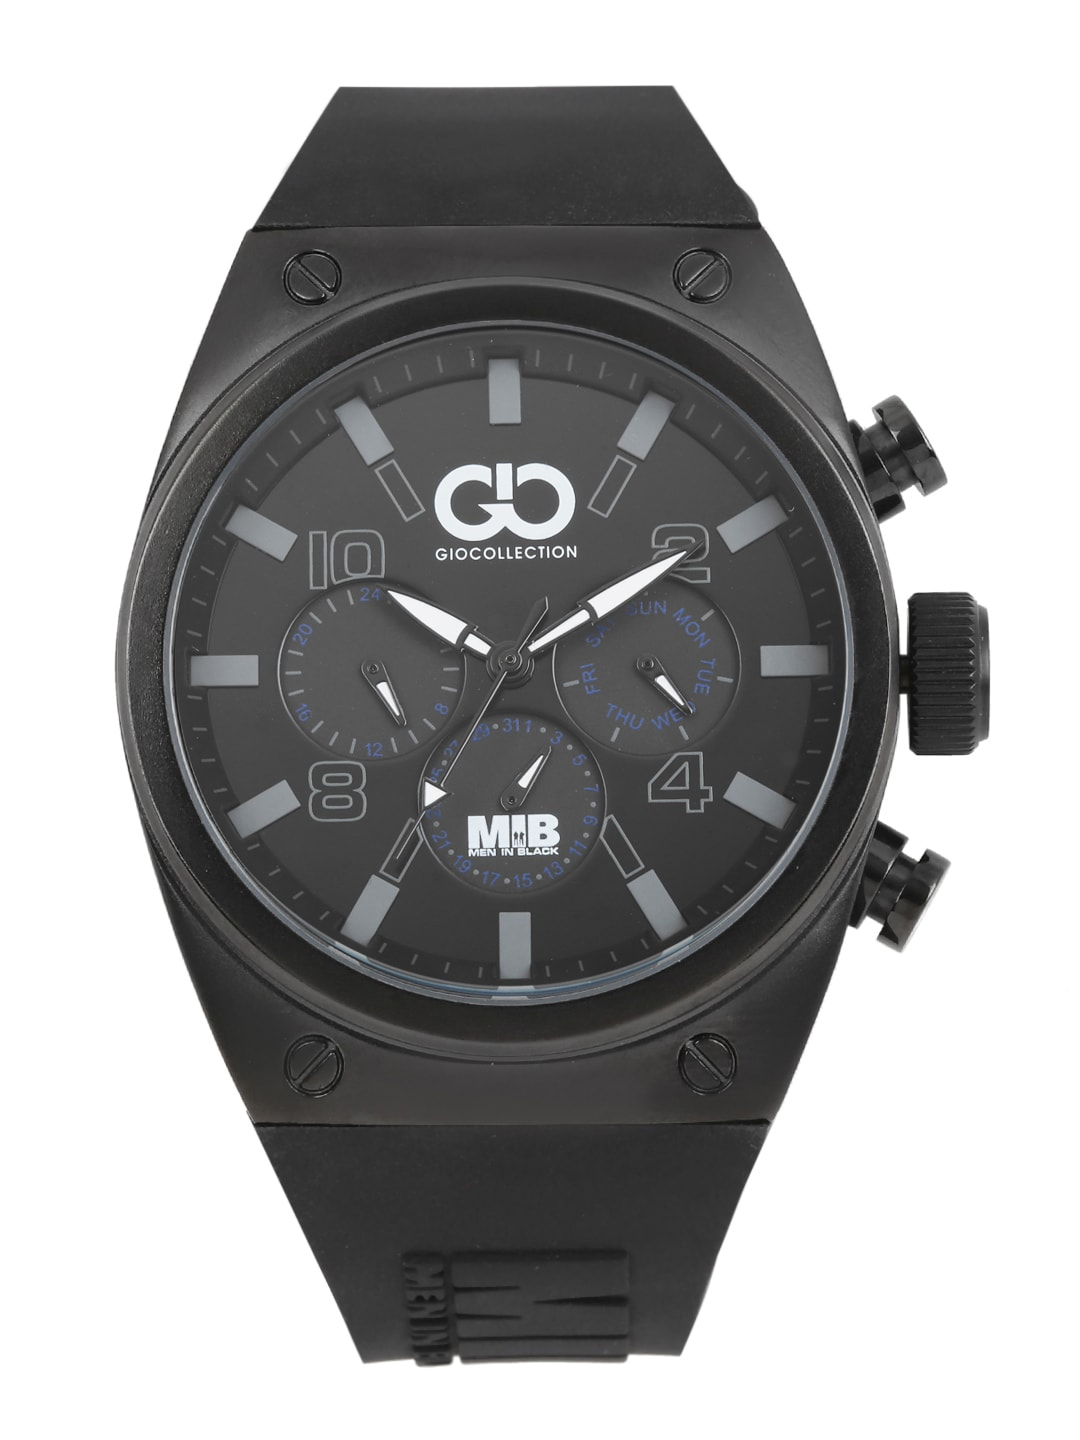 GIO COLLECTION Men Black Multi-Function Watch AD-0044-B image